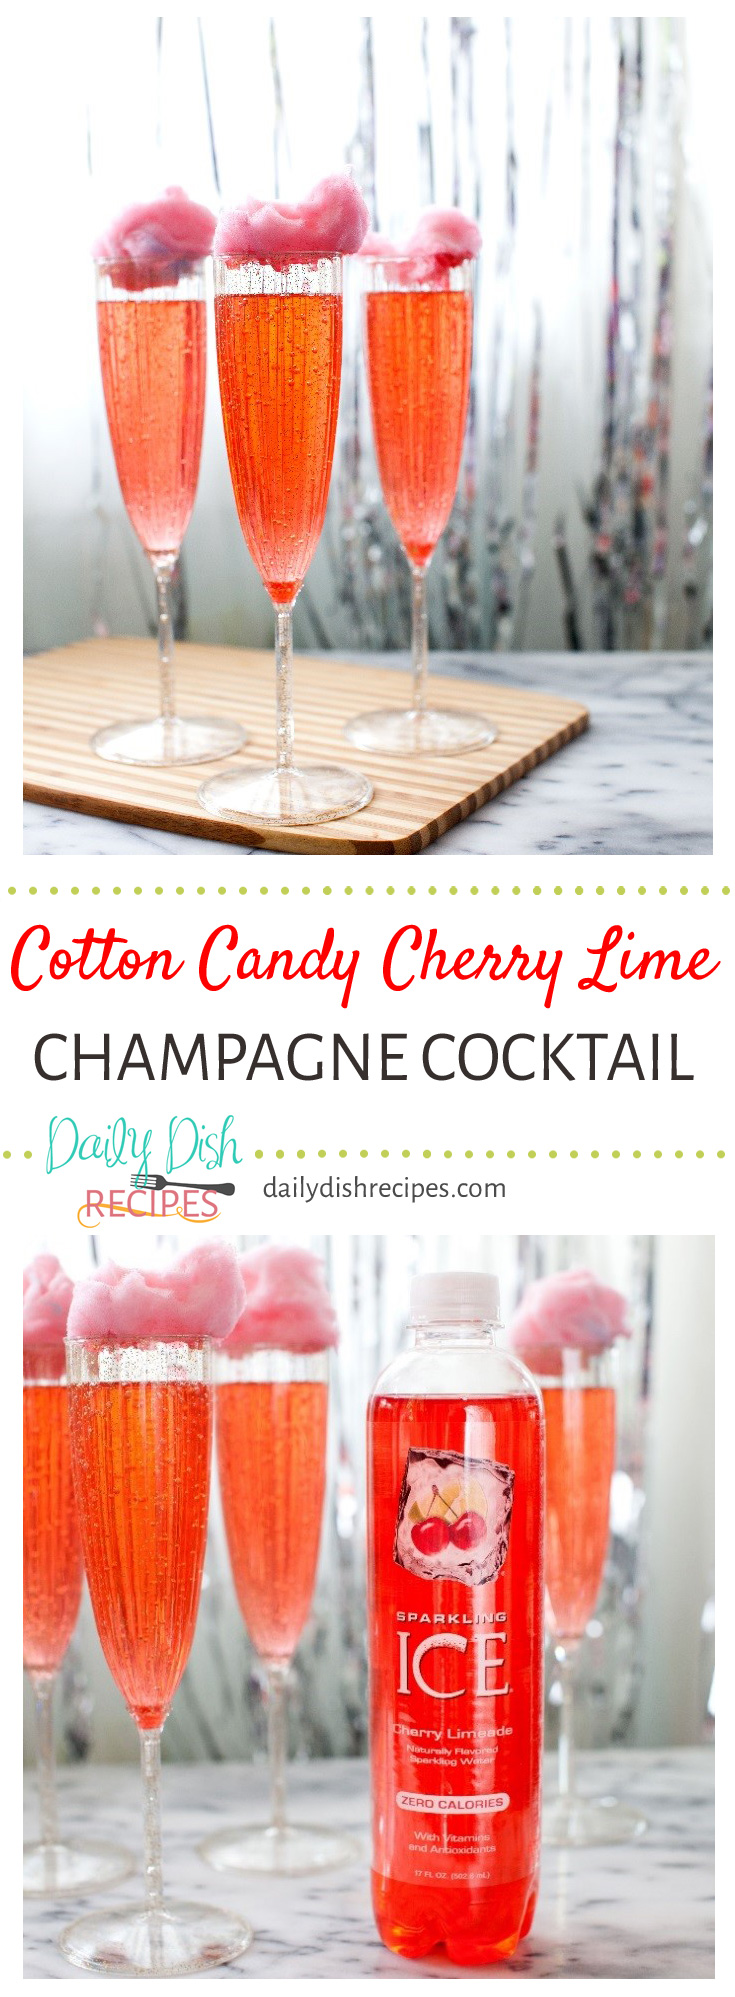 This Cotton Candy Cherry Lime Champagne Cocktail is the perfecct addition to your New Year's Eve party or gathering! Easy but so fun and festive!